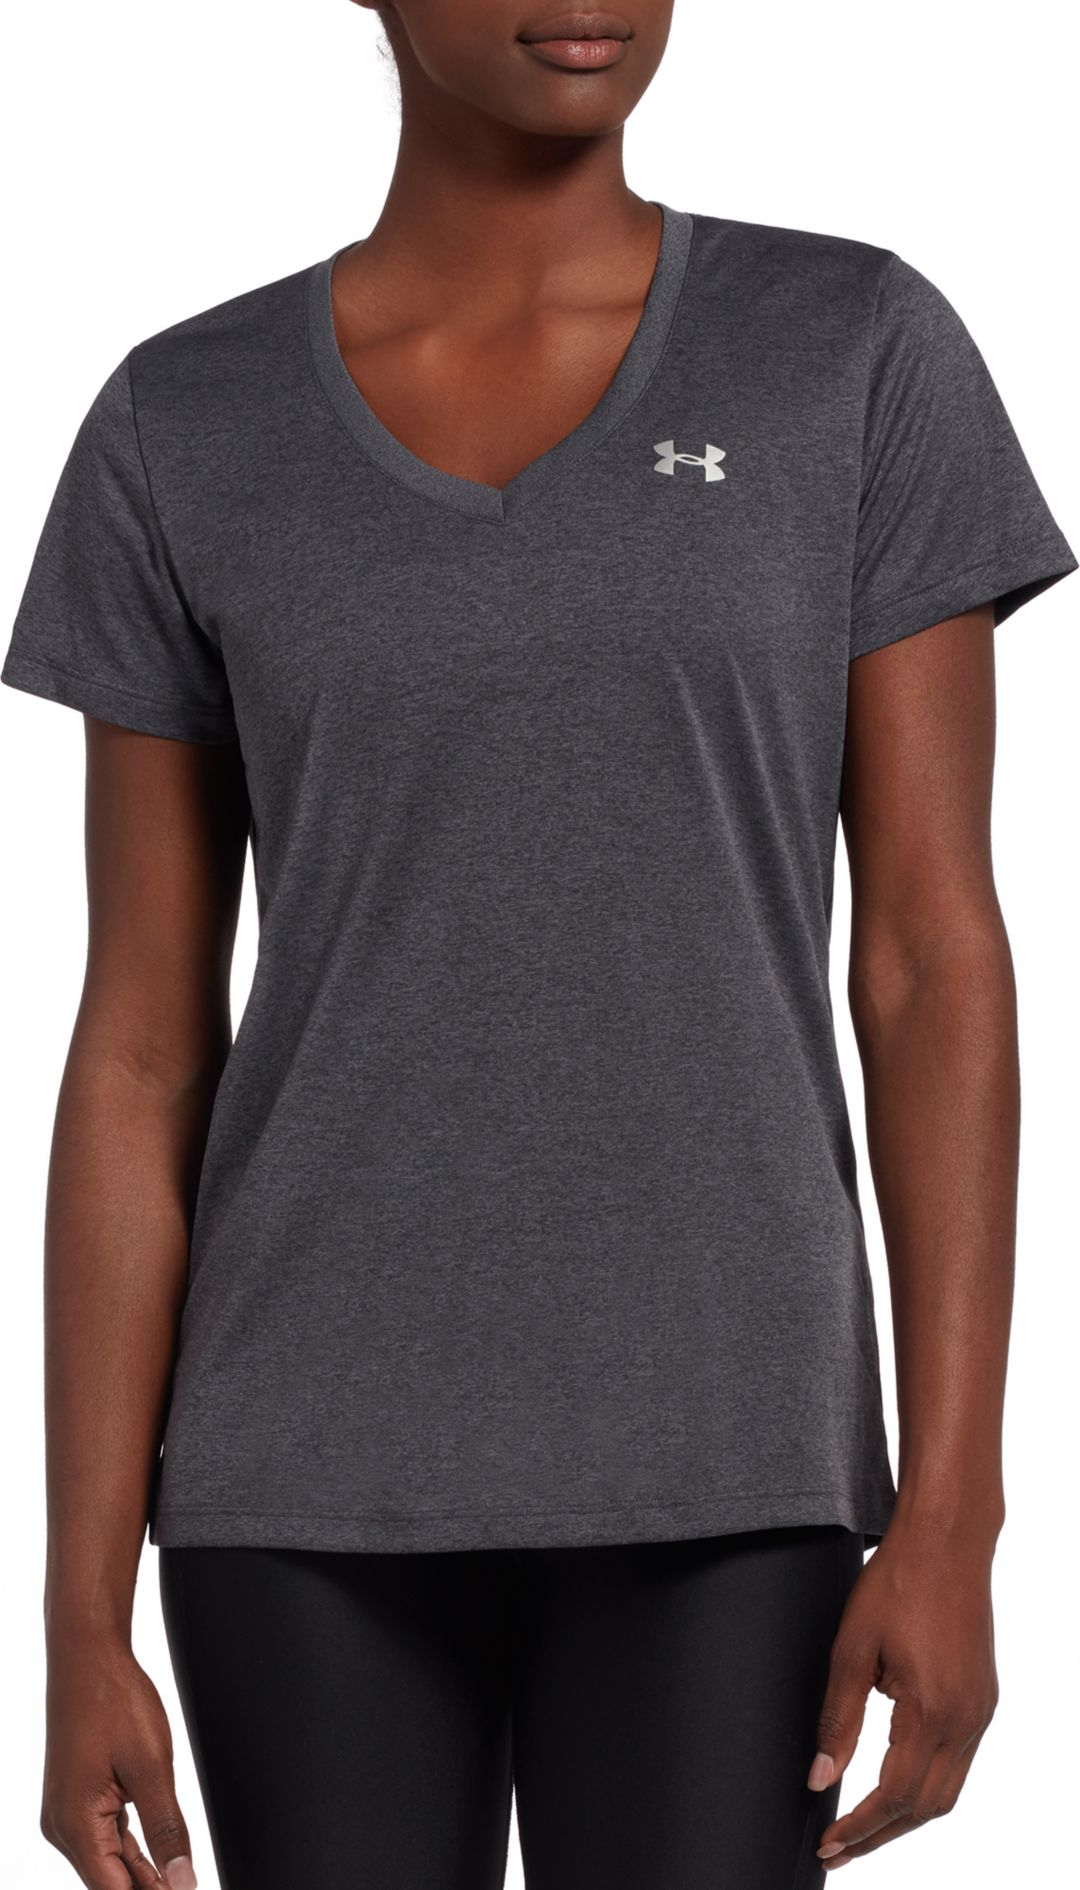 fd003bdc7 Under Armour Women's Tech V-Neck Short Sleeve Shirt | DICK'S ...